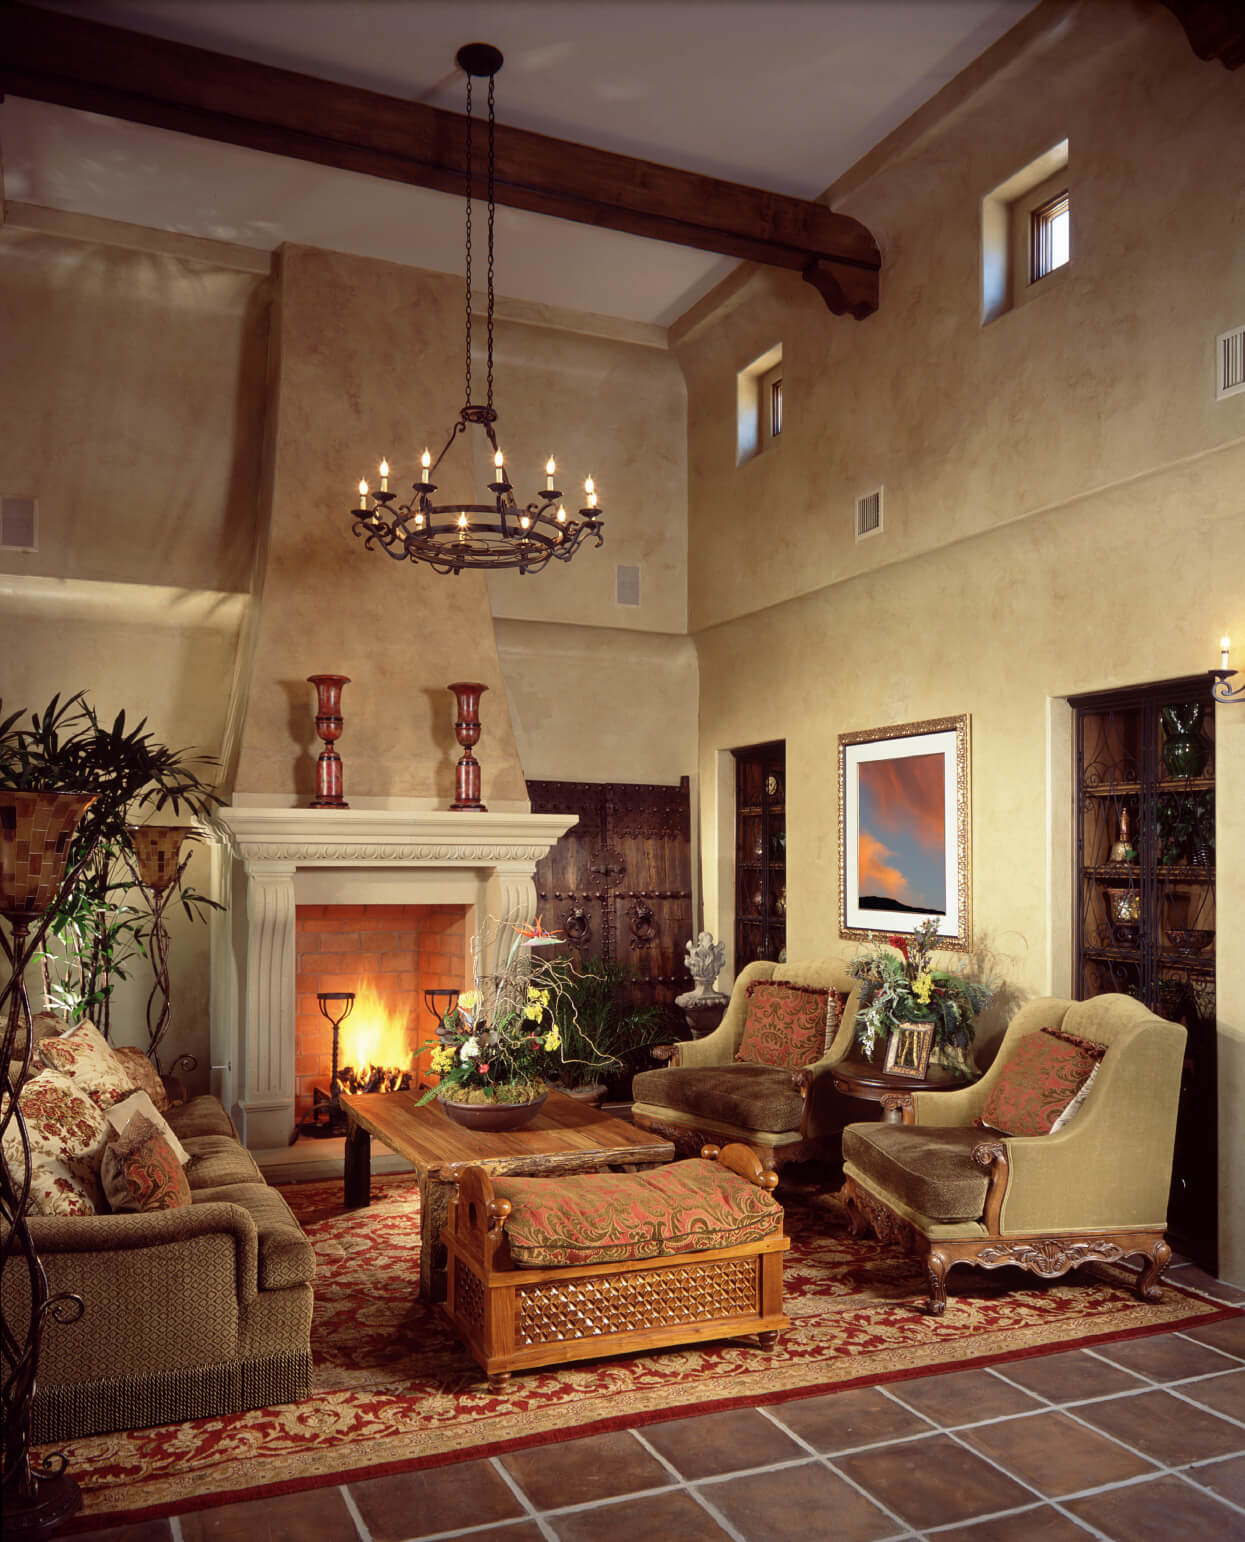 Brick Backed Open Fireplace With Ornate Mantle Heavy Wood Doors And